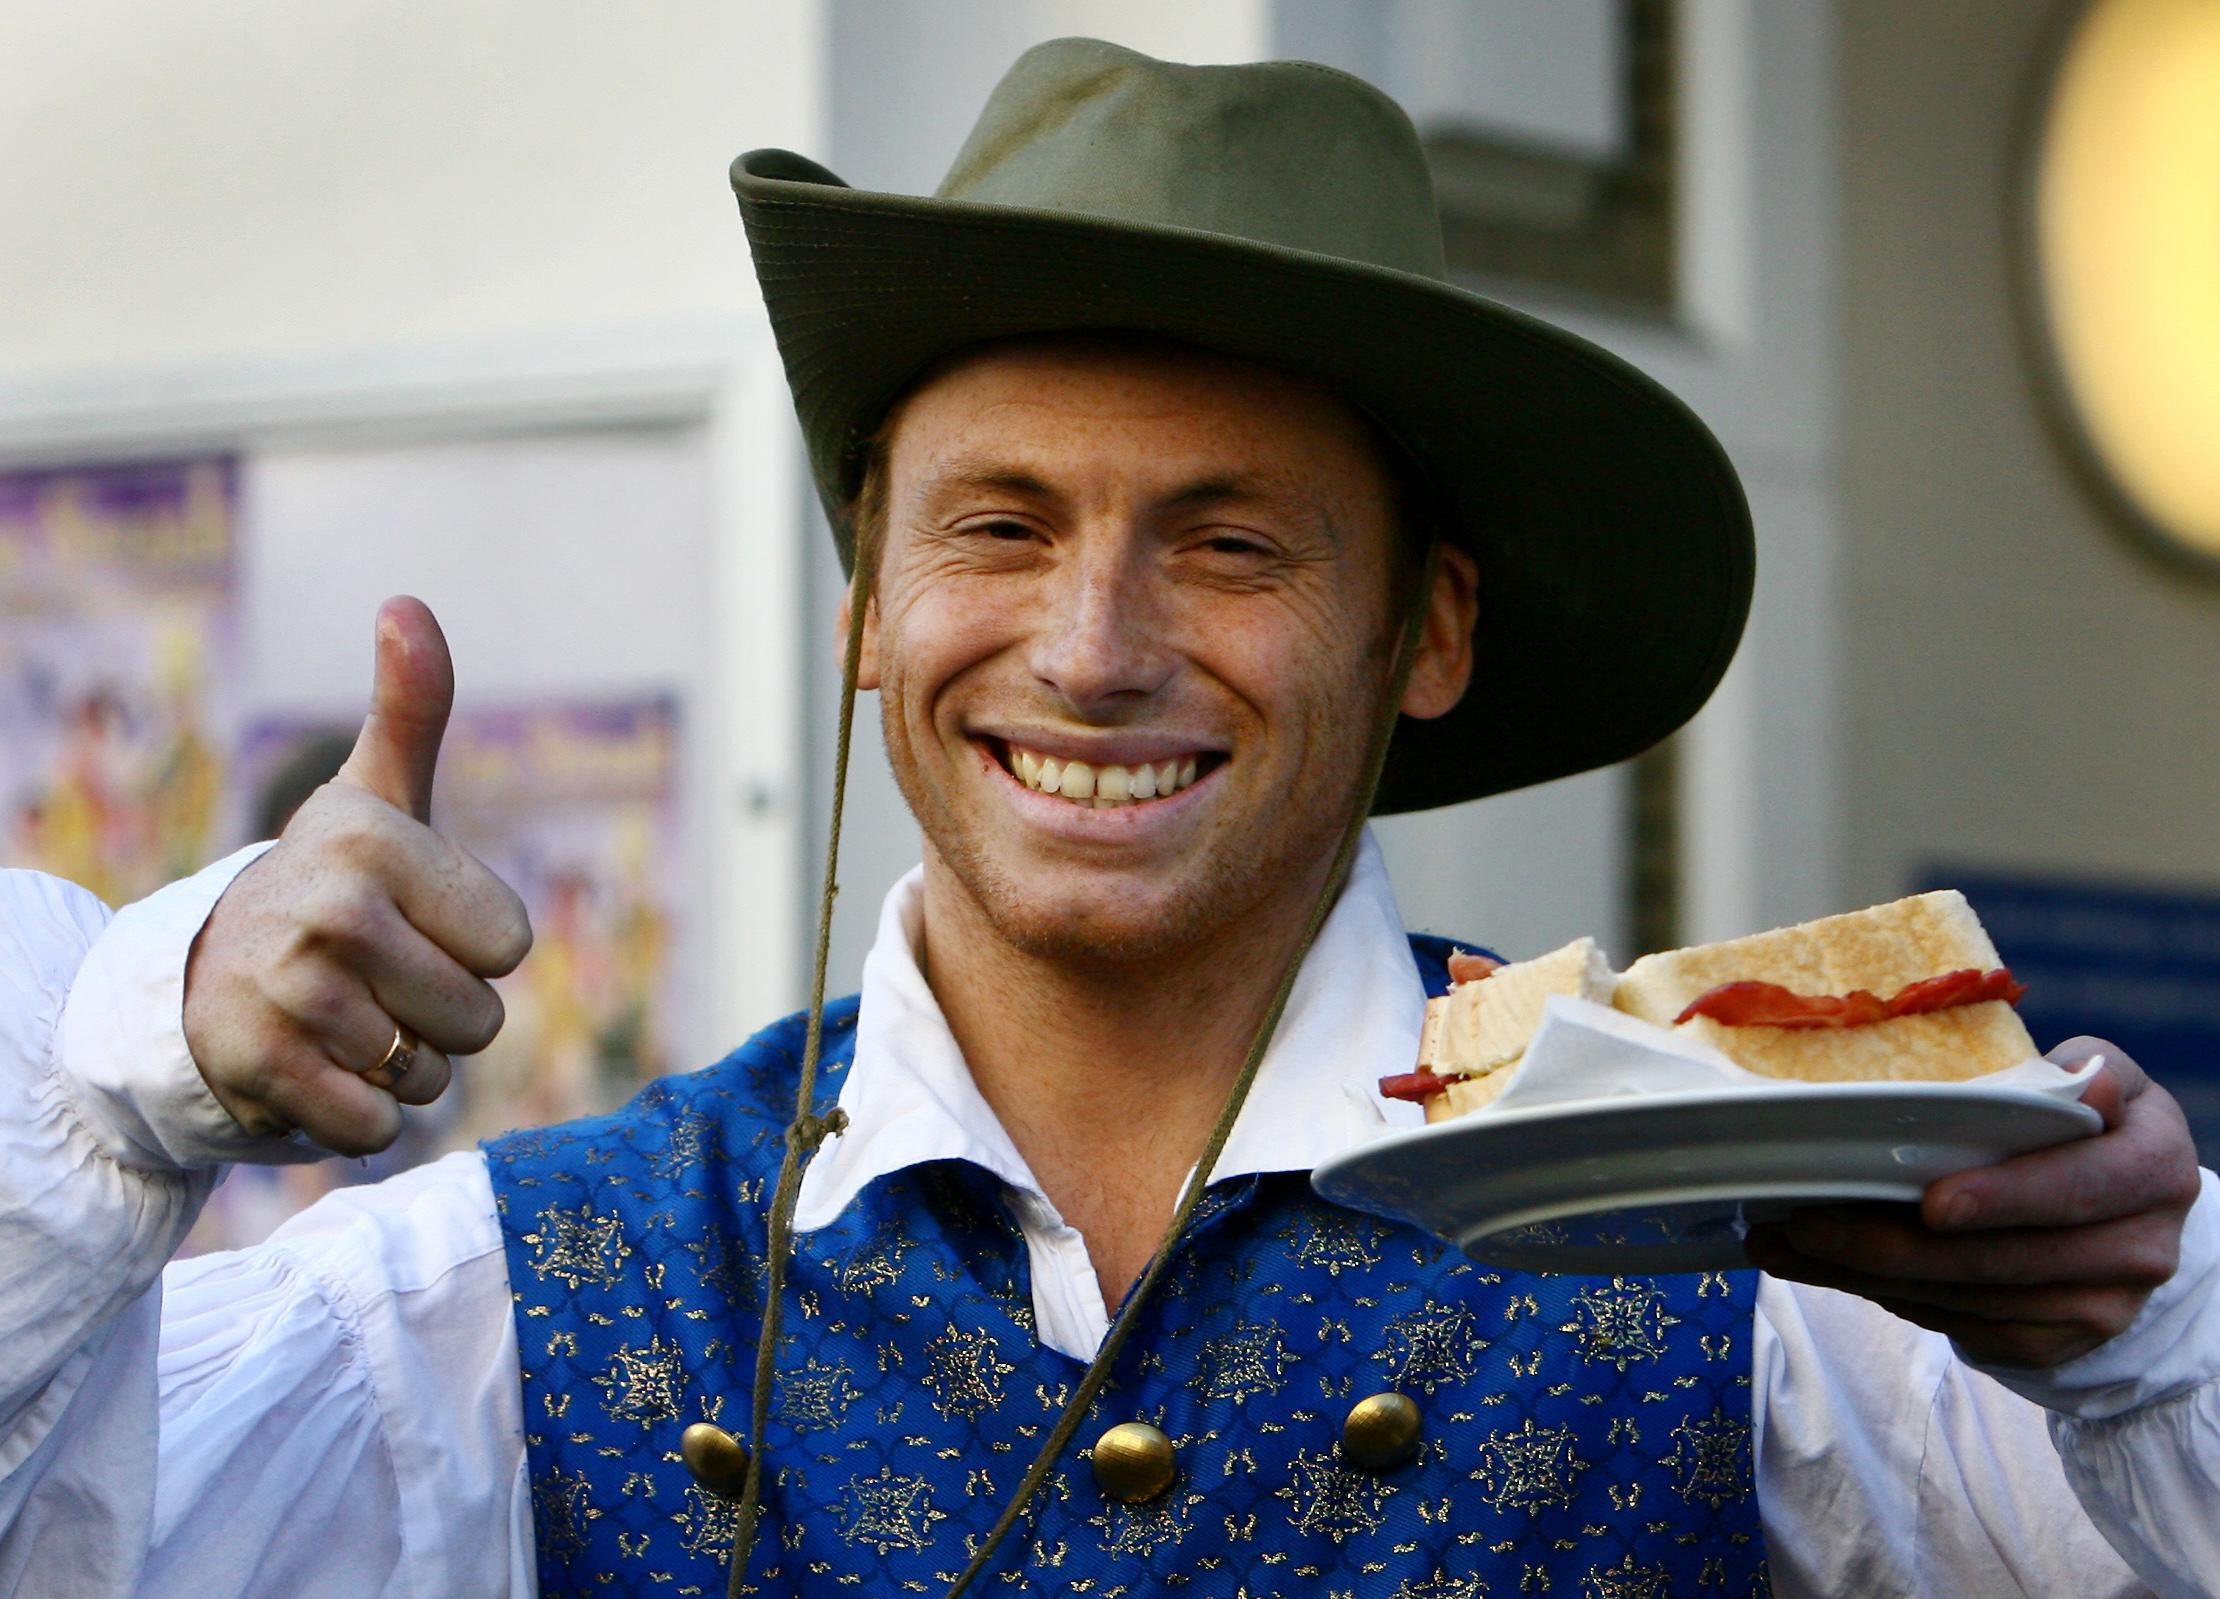 Actor and presenter Joe Swash with a sandwich